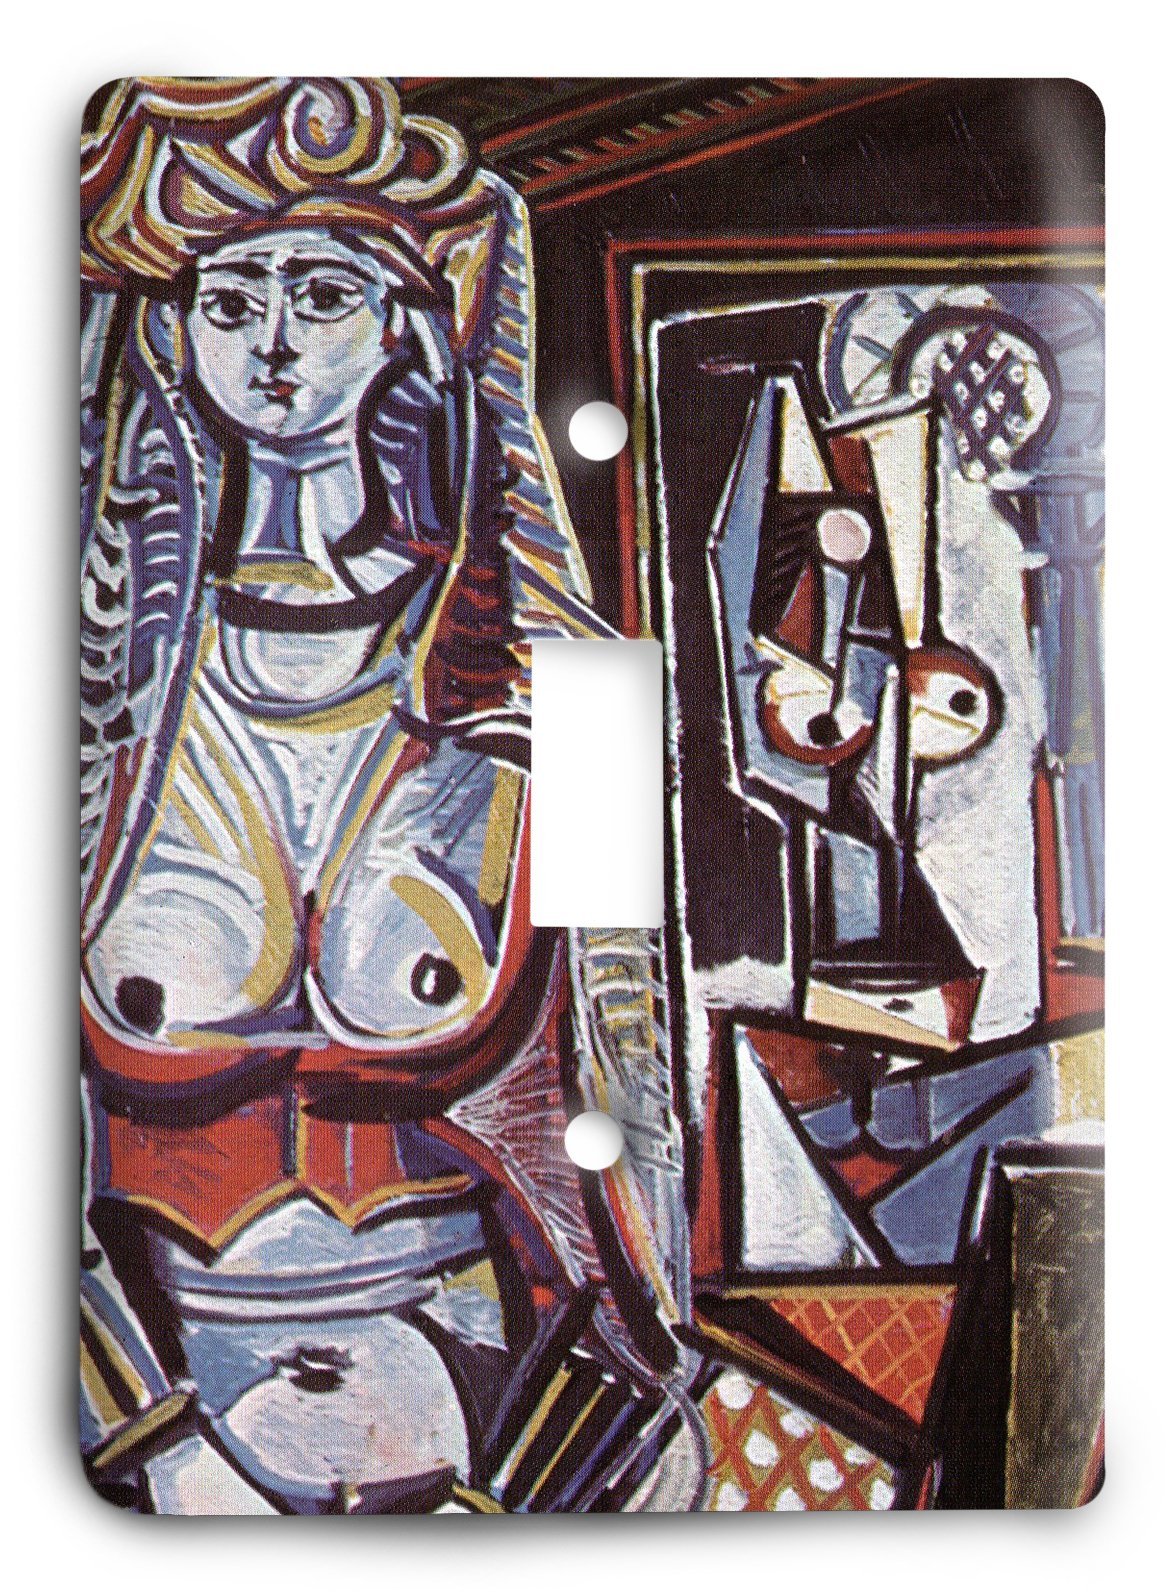 Pablo Picasso - Women of Algiers, after Delacroix 1955 Light Switch Cover